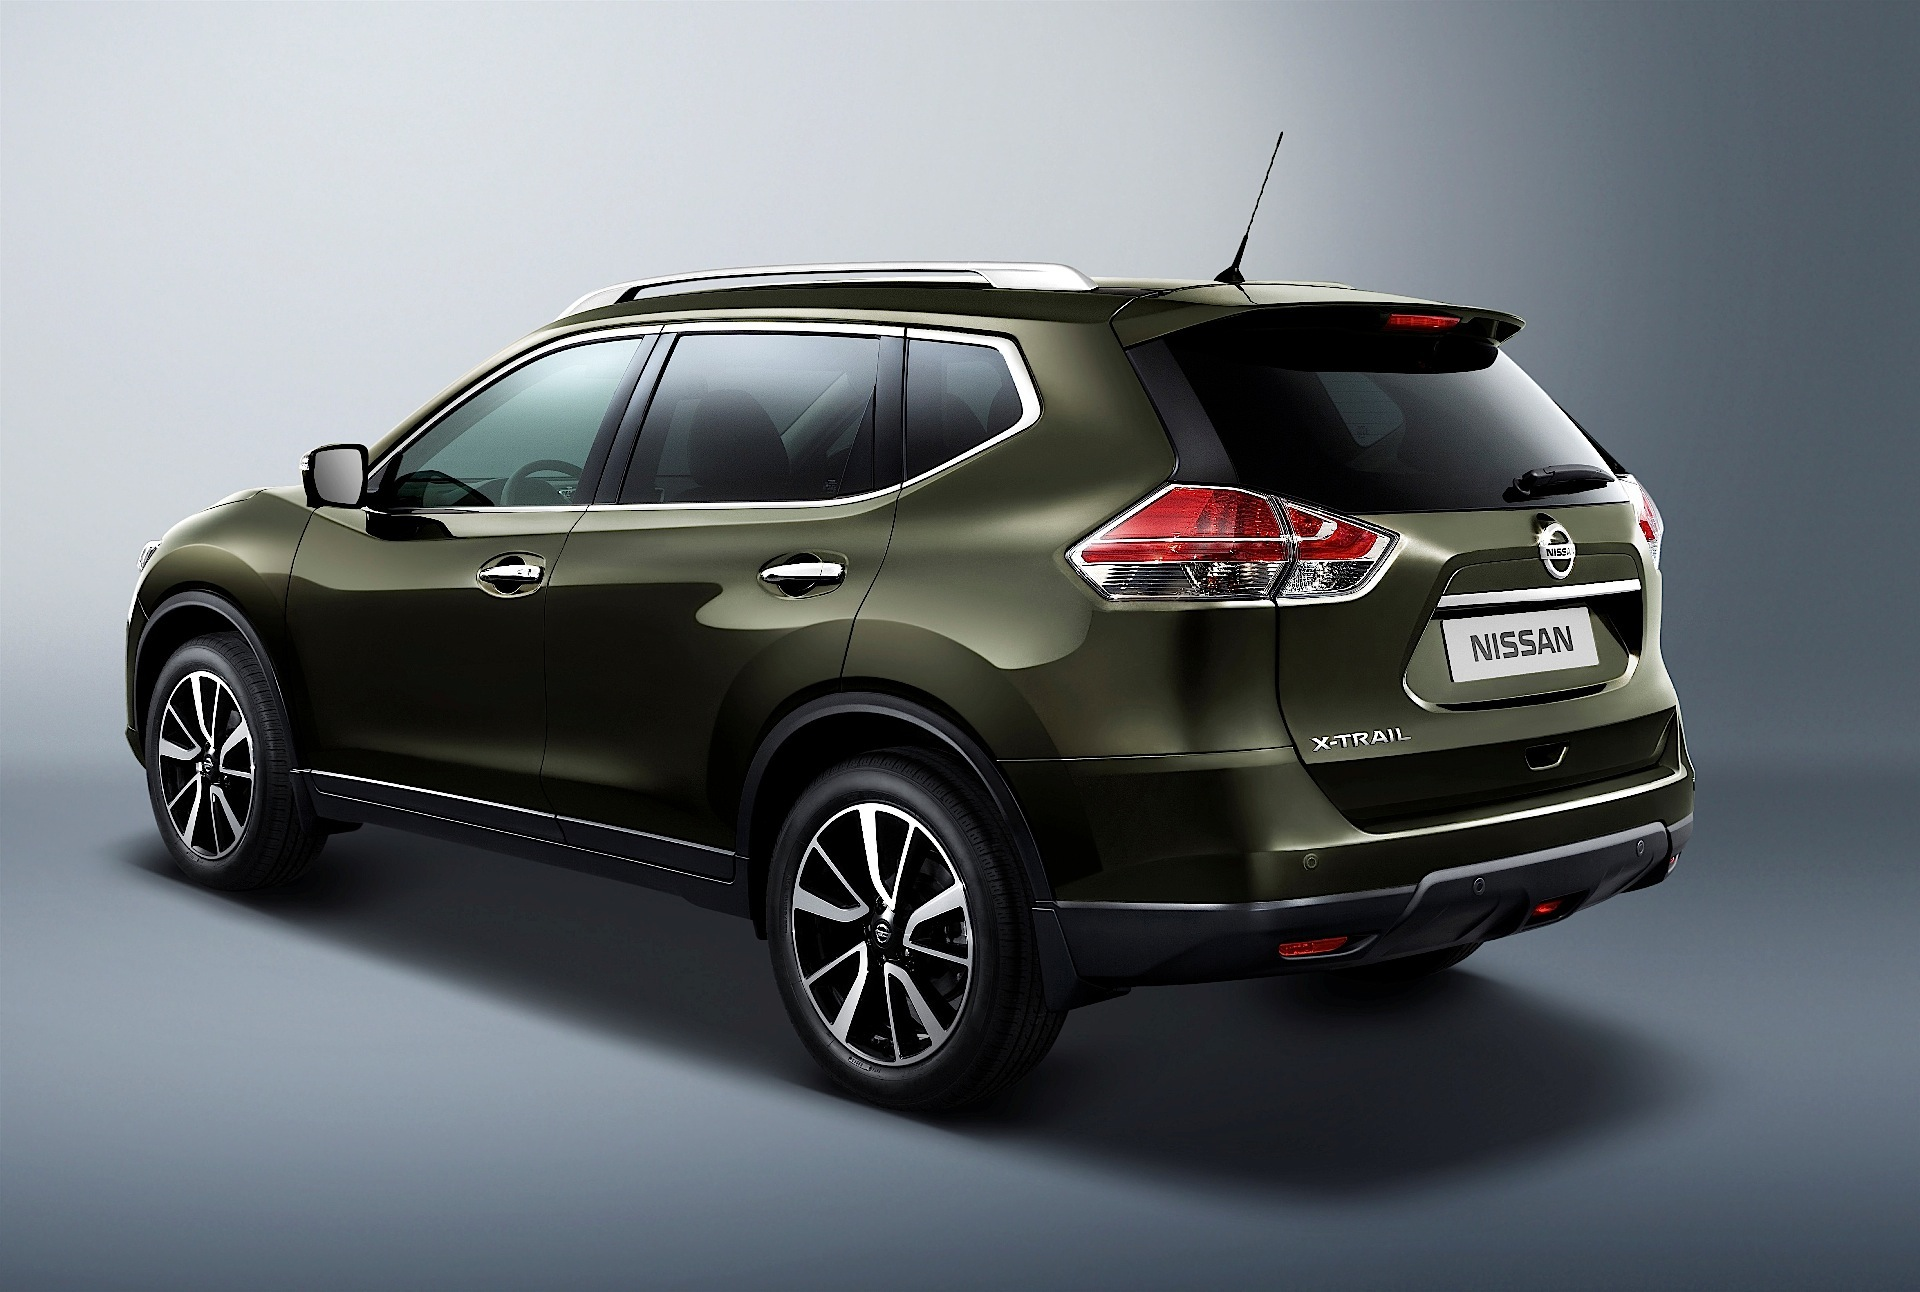 nissan x-trail 2 2014 pictures